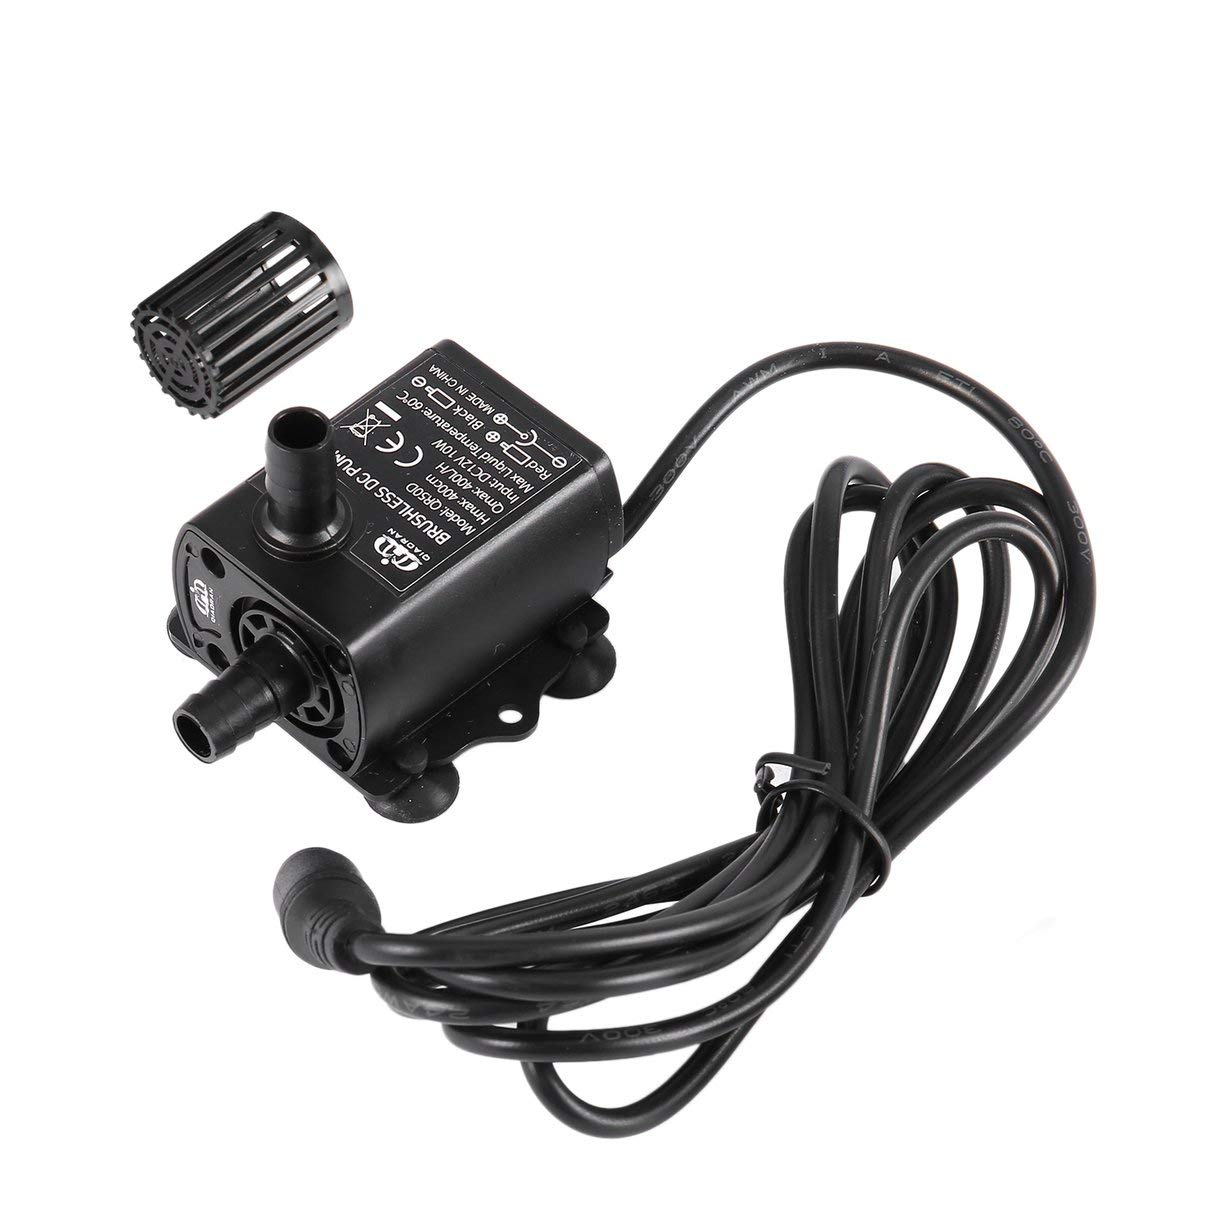 Ultra-quiet Mini Submersible Water Pump Waterproof Brushless DC Water Pump with 5.52.1mm Female Plug DC12V 10W 400L/H Lift 4m